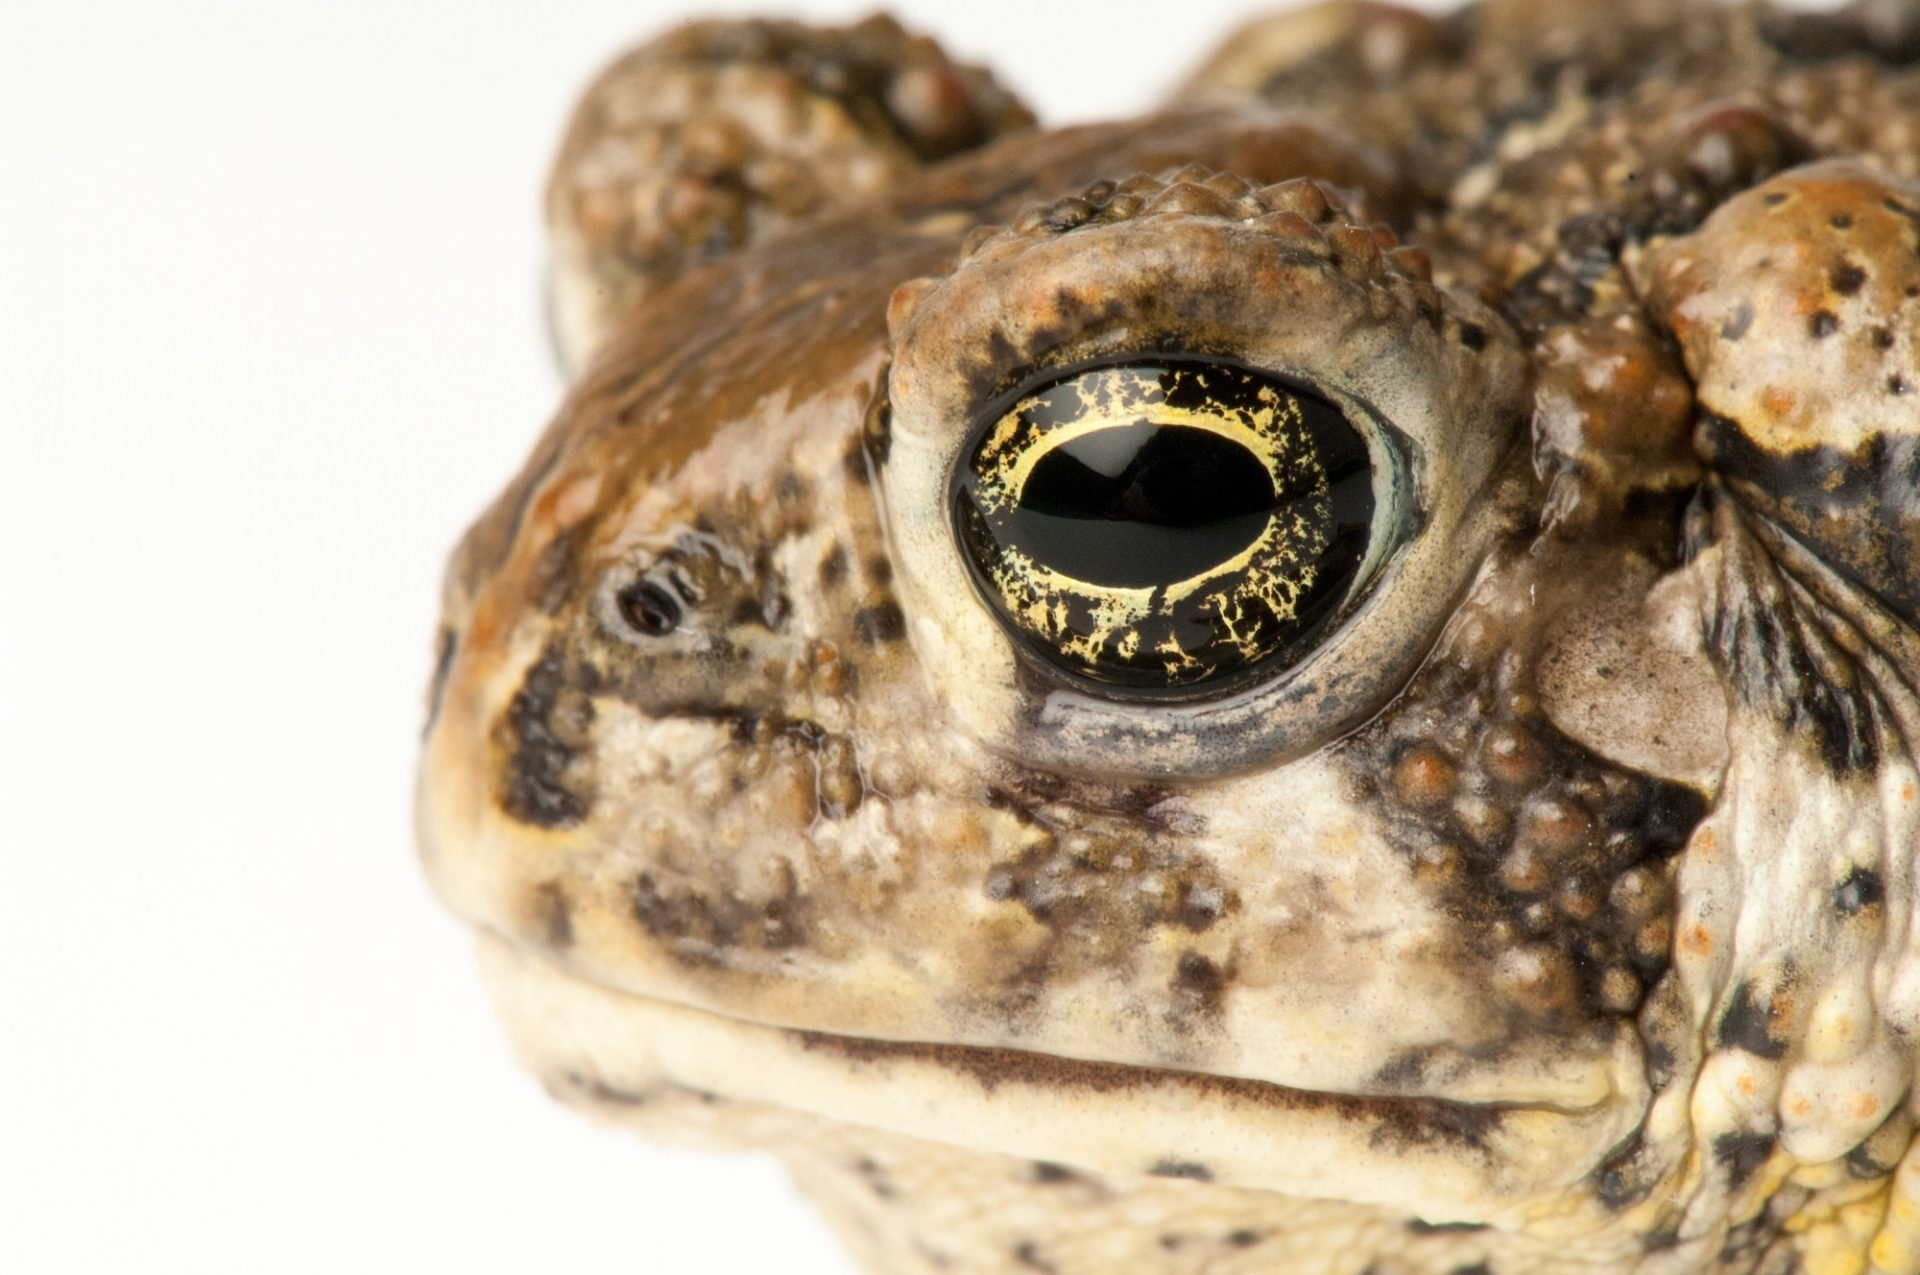 The federally endangered Wyoming toad (Anaxyrus (Bufo) baxterii) at the Cheyenne Mountain Zoo near Colorado Springs, CO. Considered extinct in the wild.